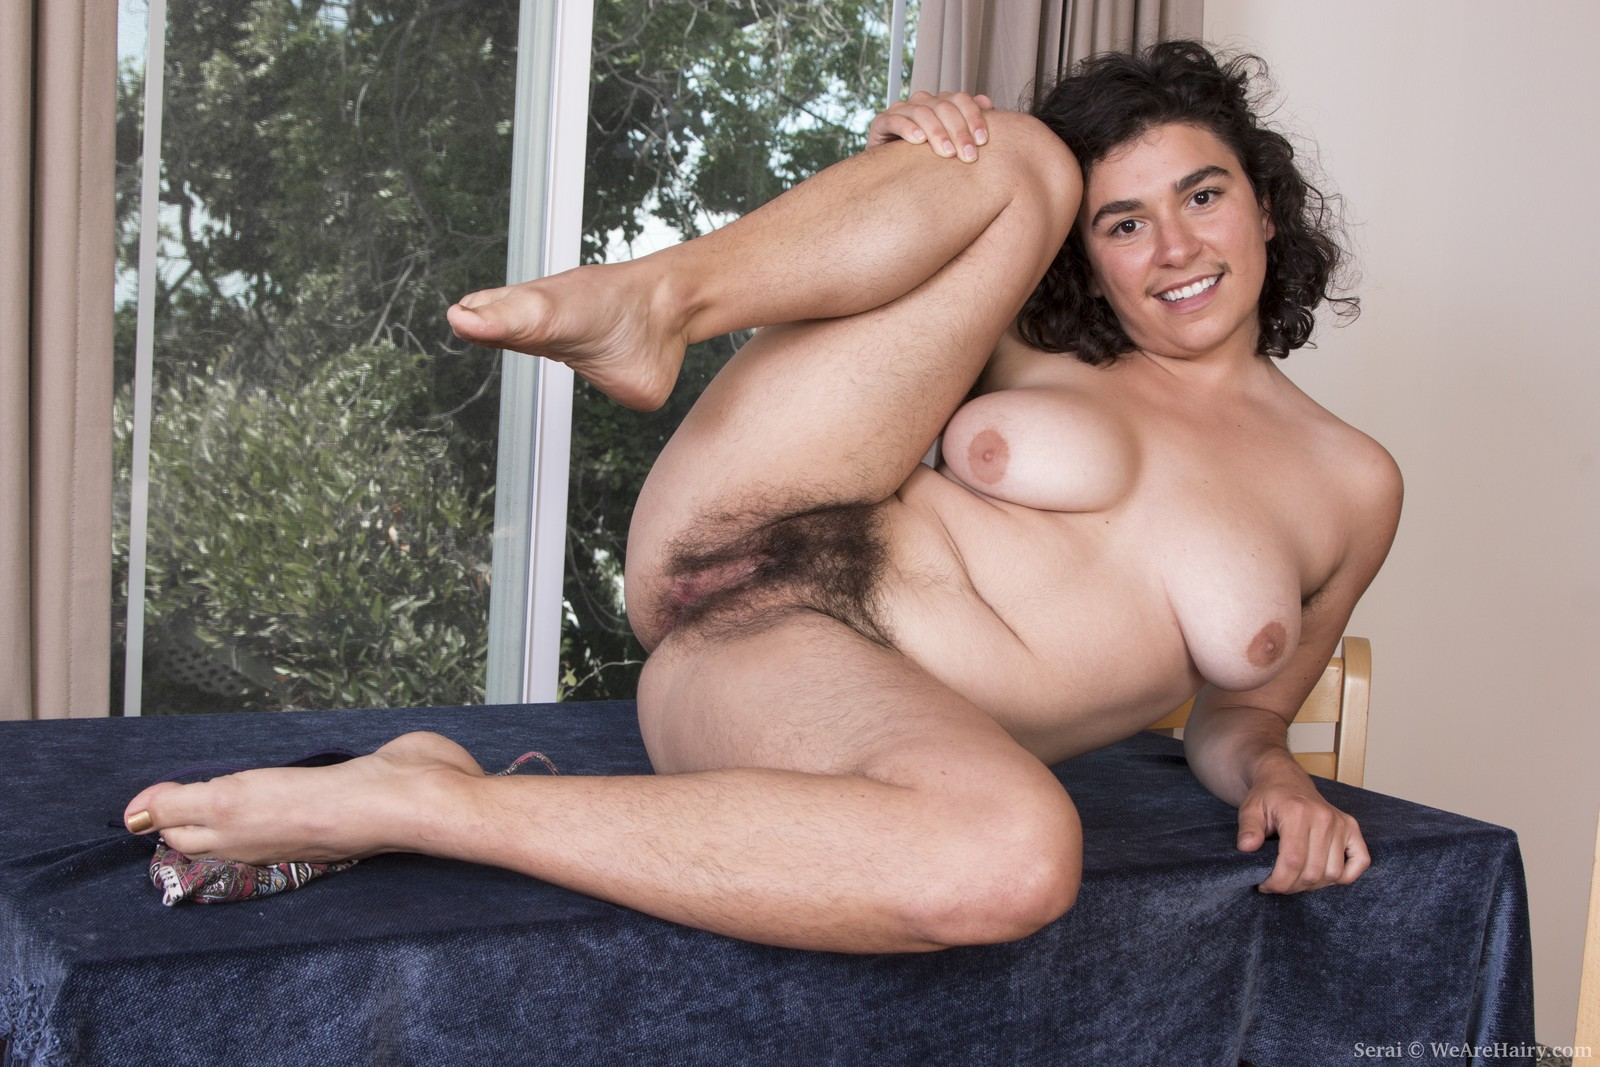 hairy nudes American